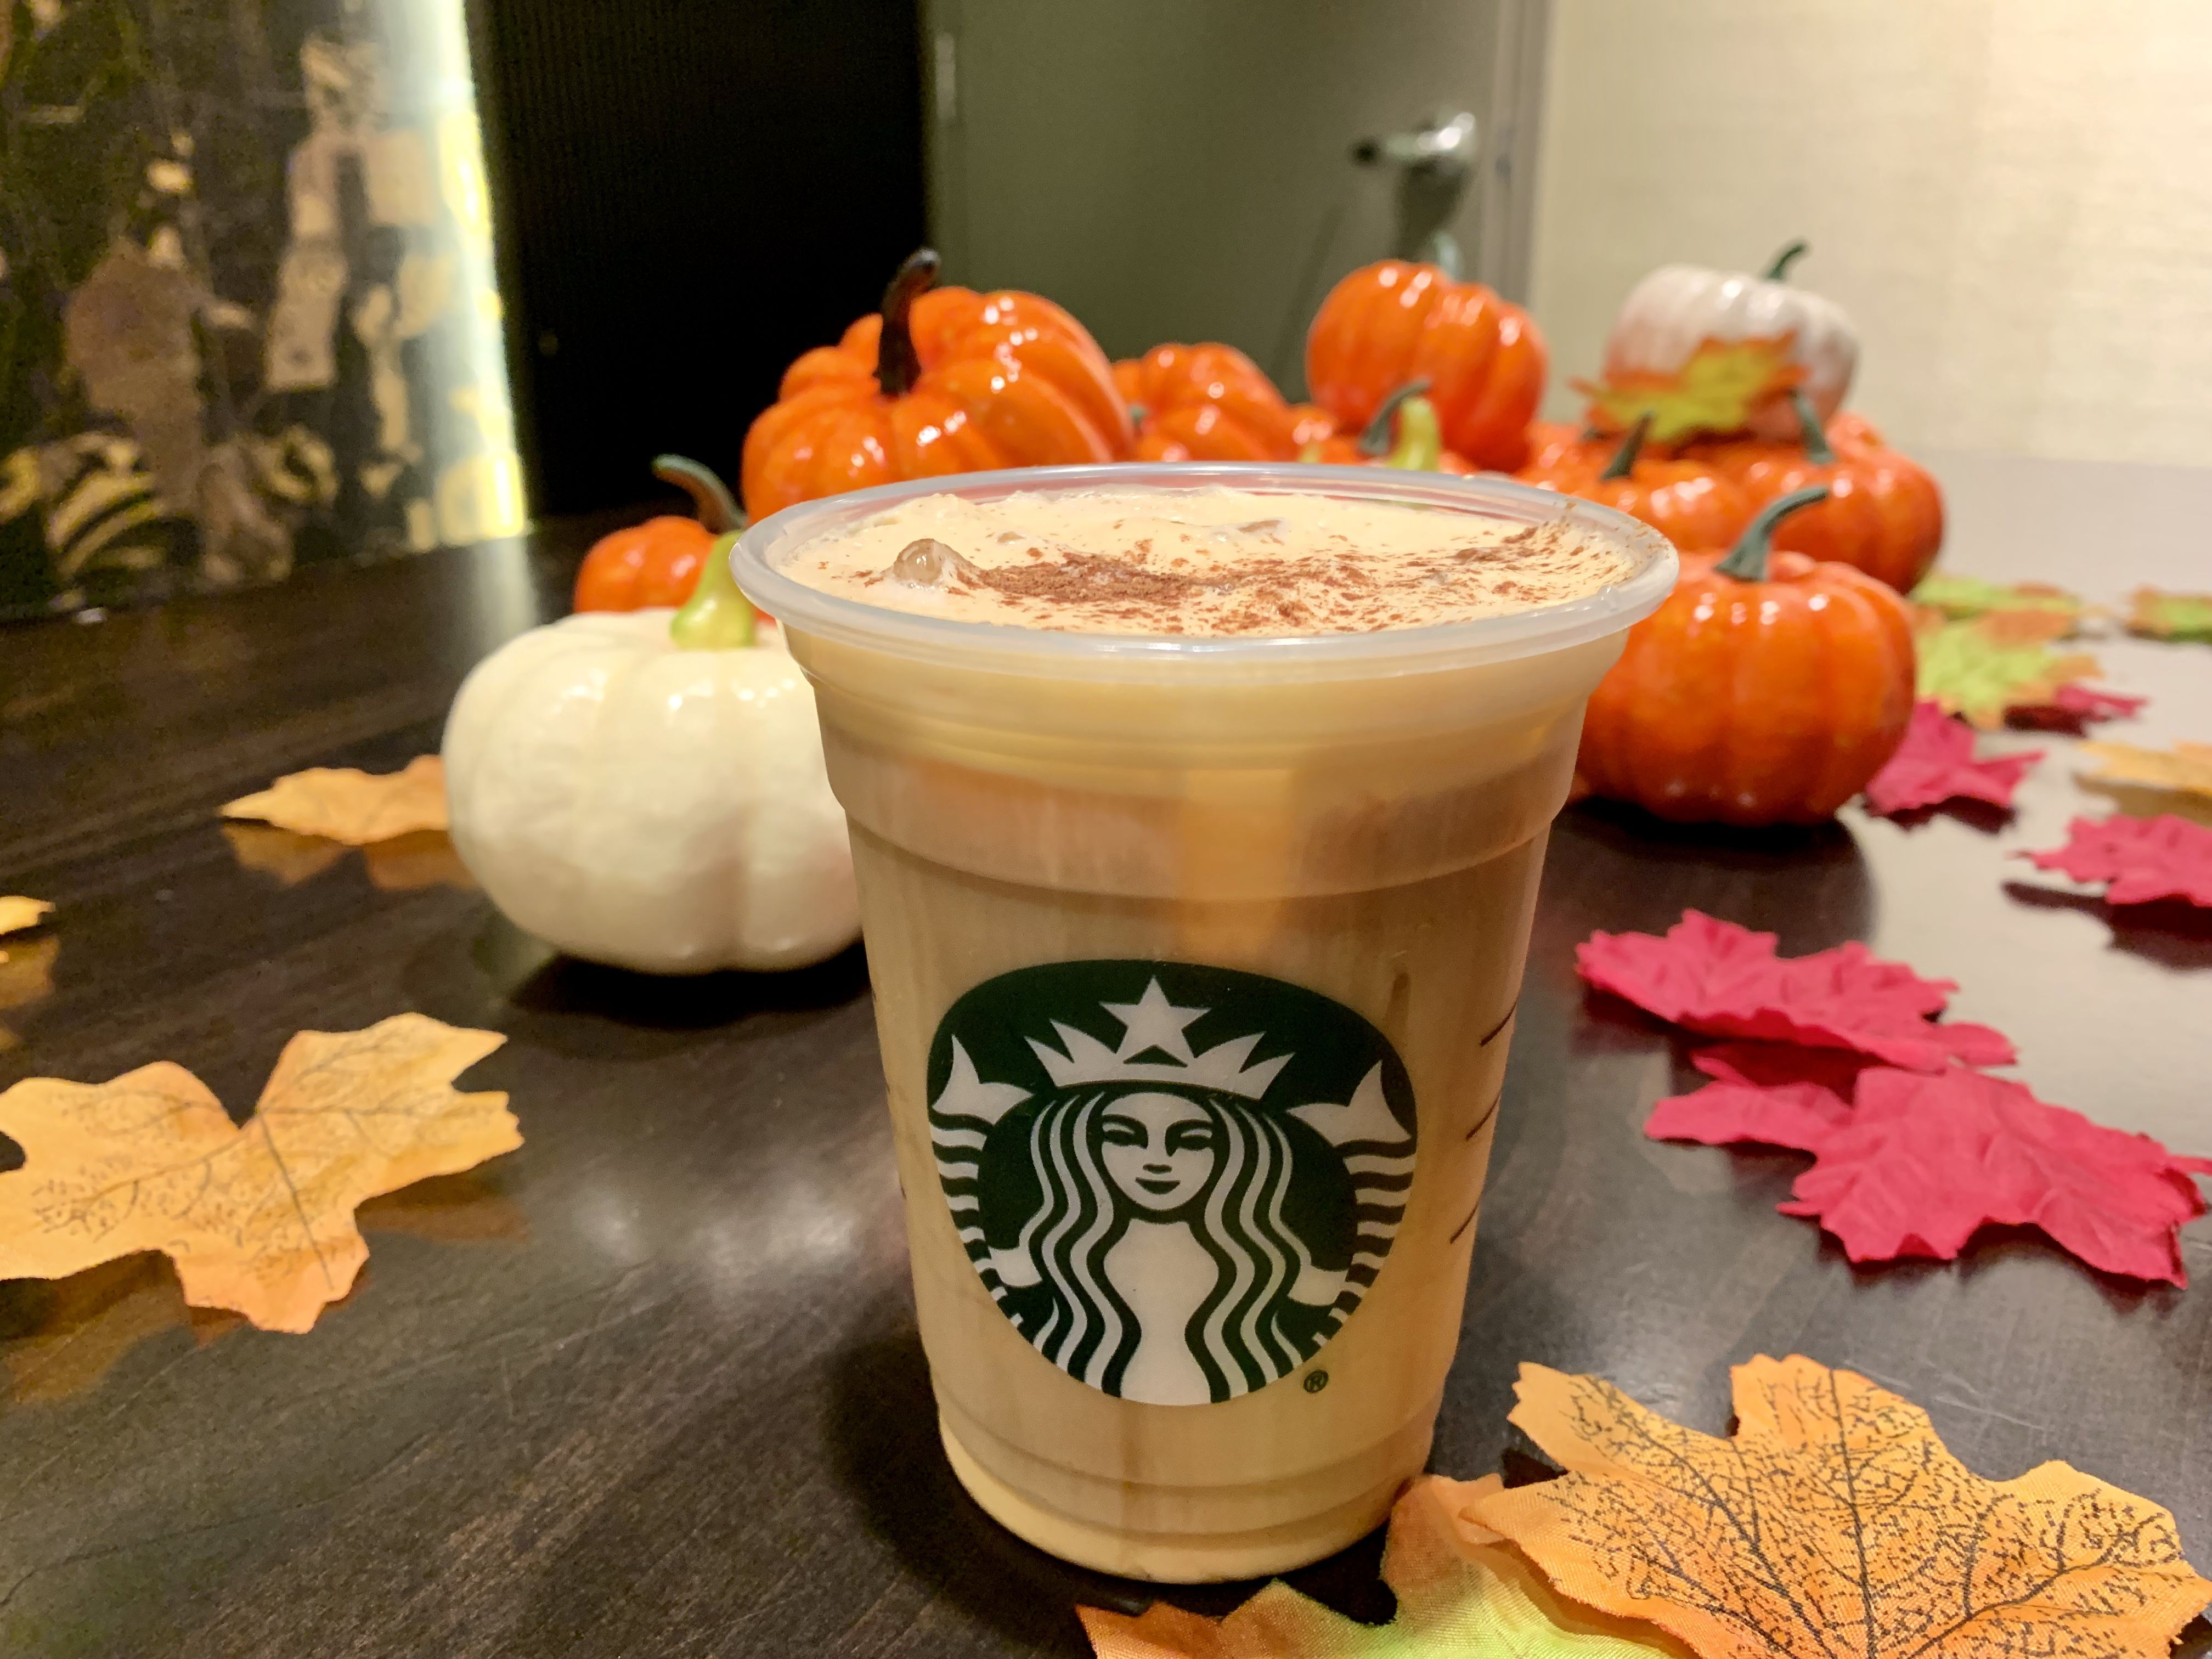 Starbucks Launches The Pumpkin Cream Cold Brew Its Second